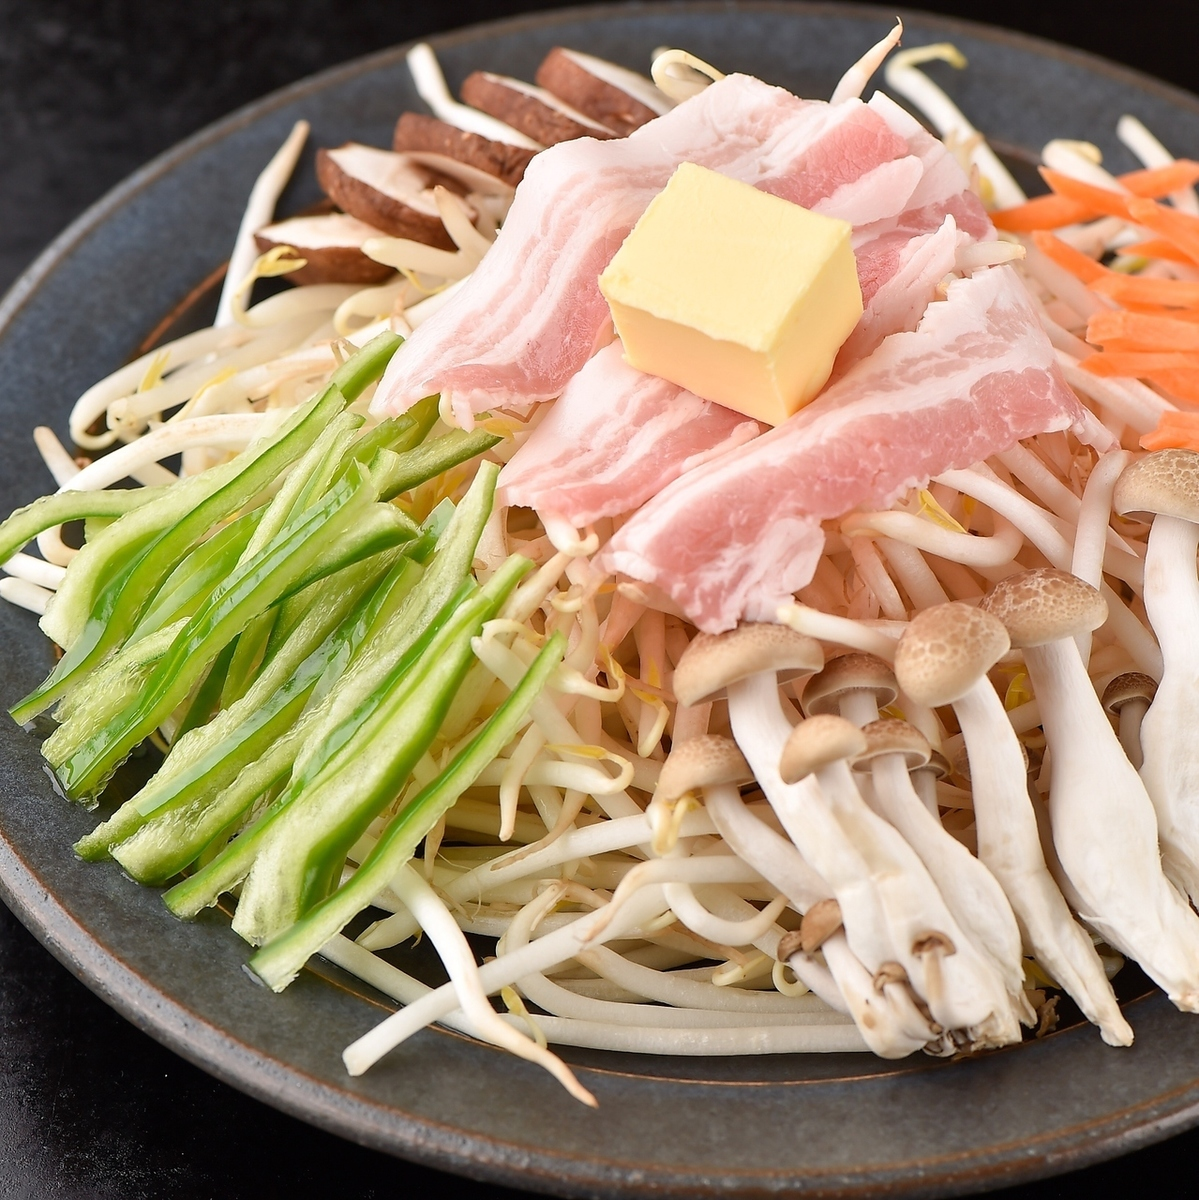 Stir-fired bean sprouts